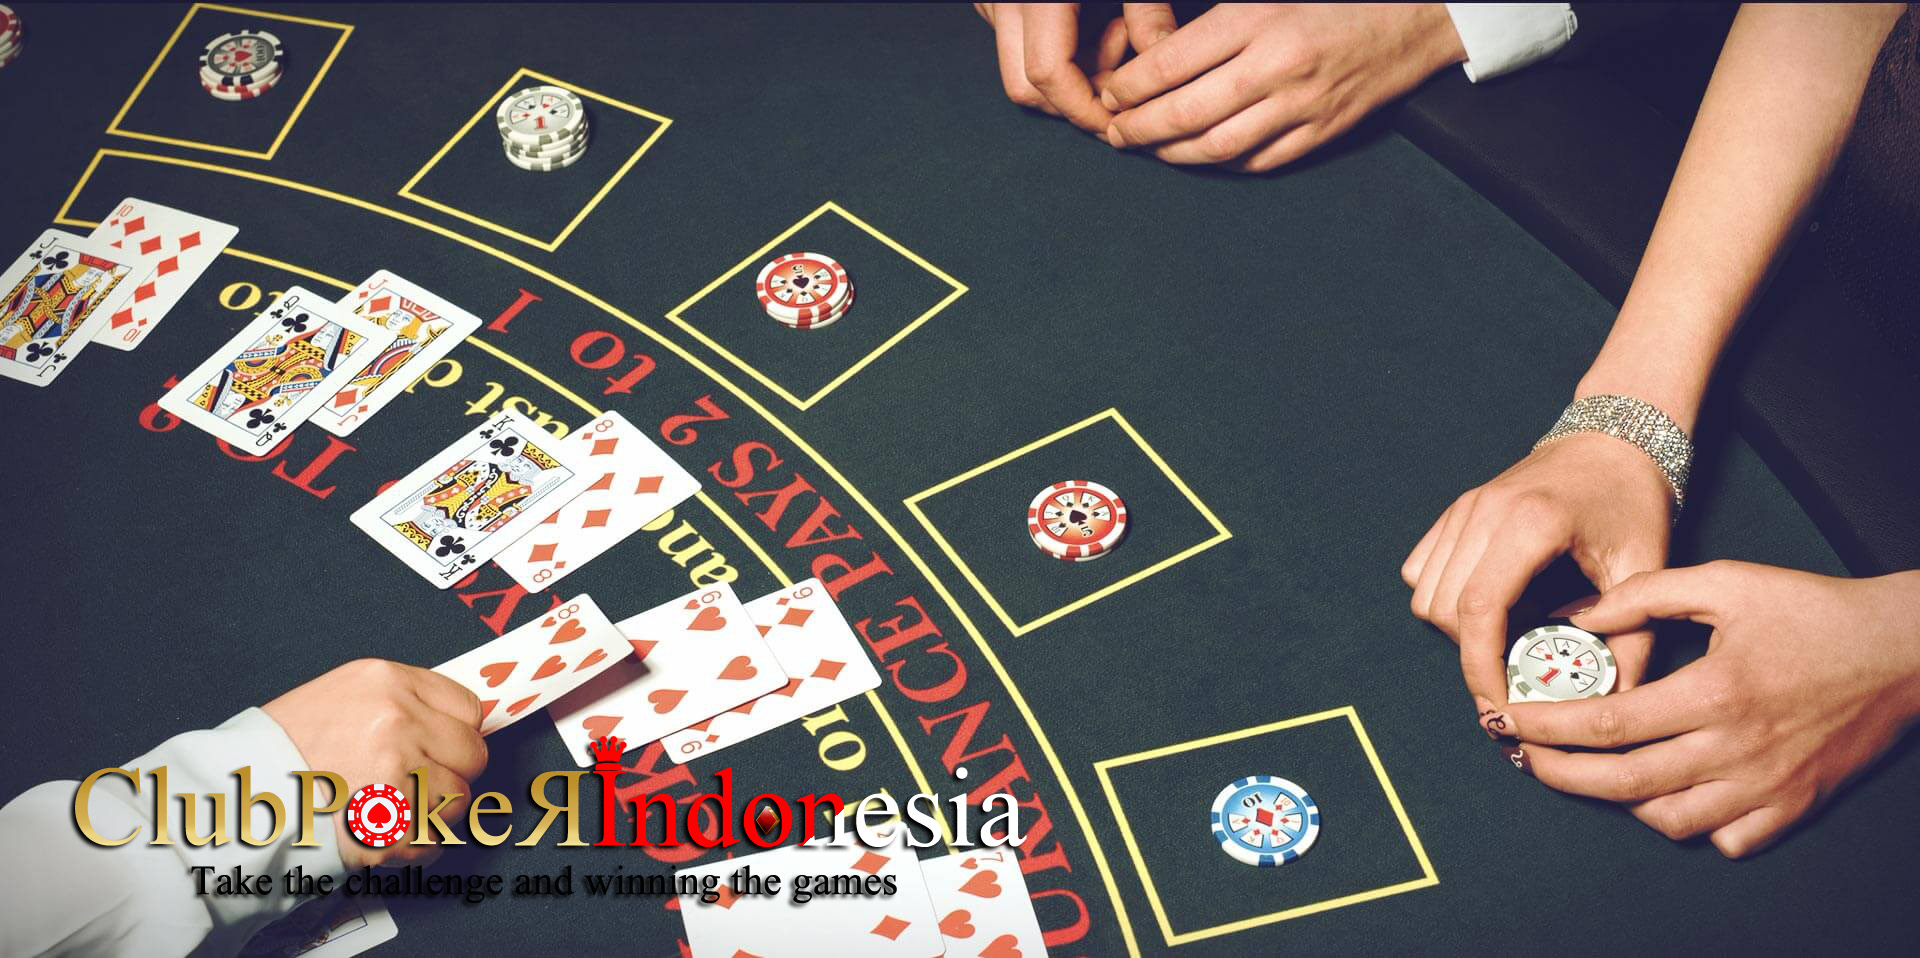 game judi blackjack online indonesia - www.clubpokeronline.site